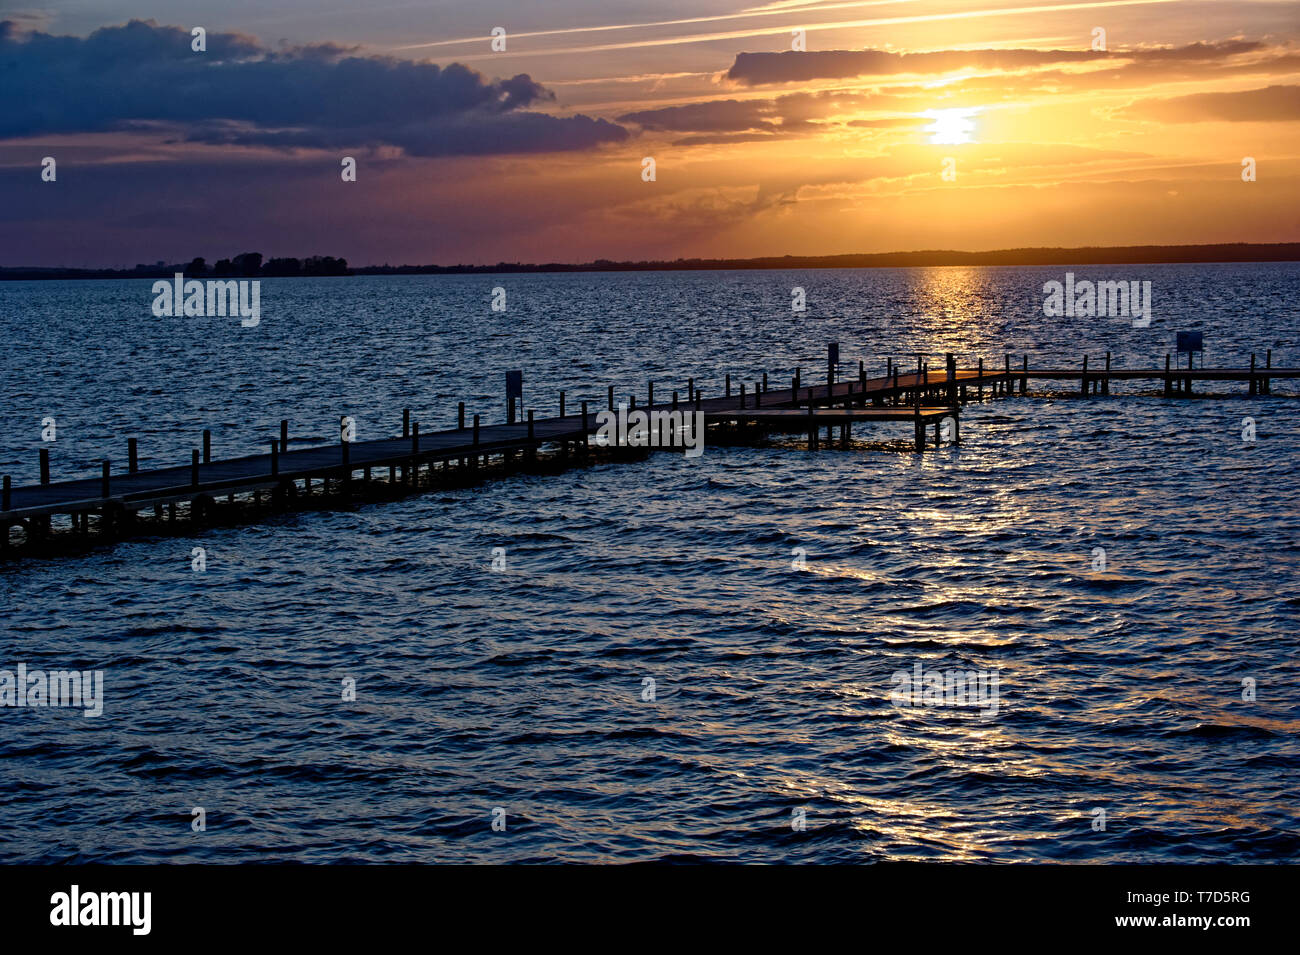 Sunset on the sea and wooden Jetty - Stock Image